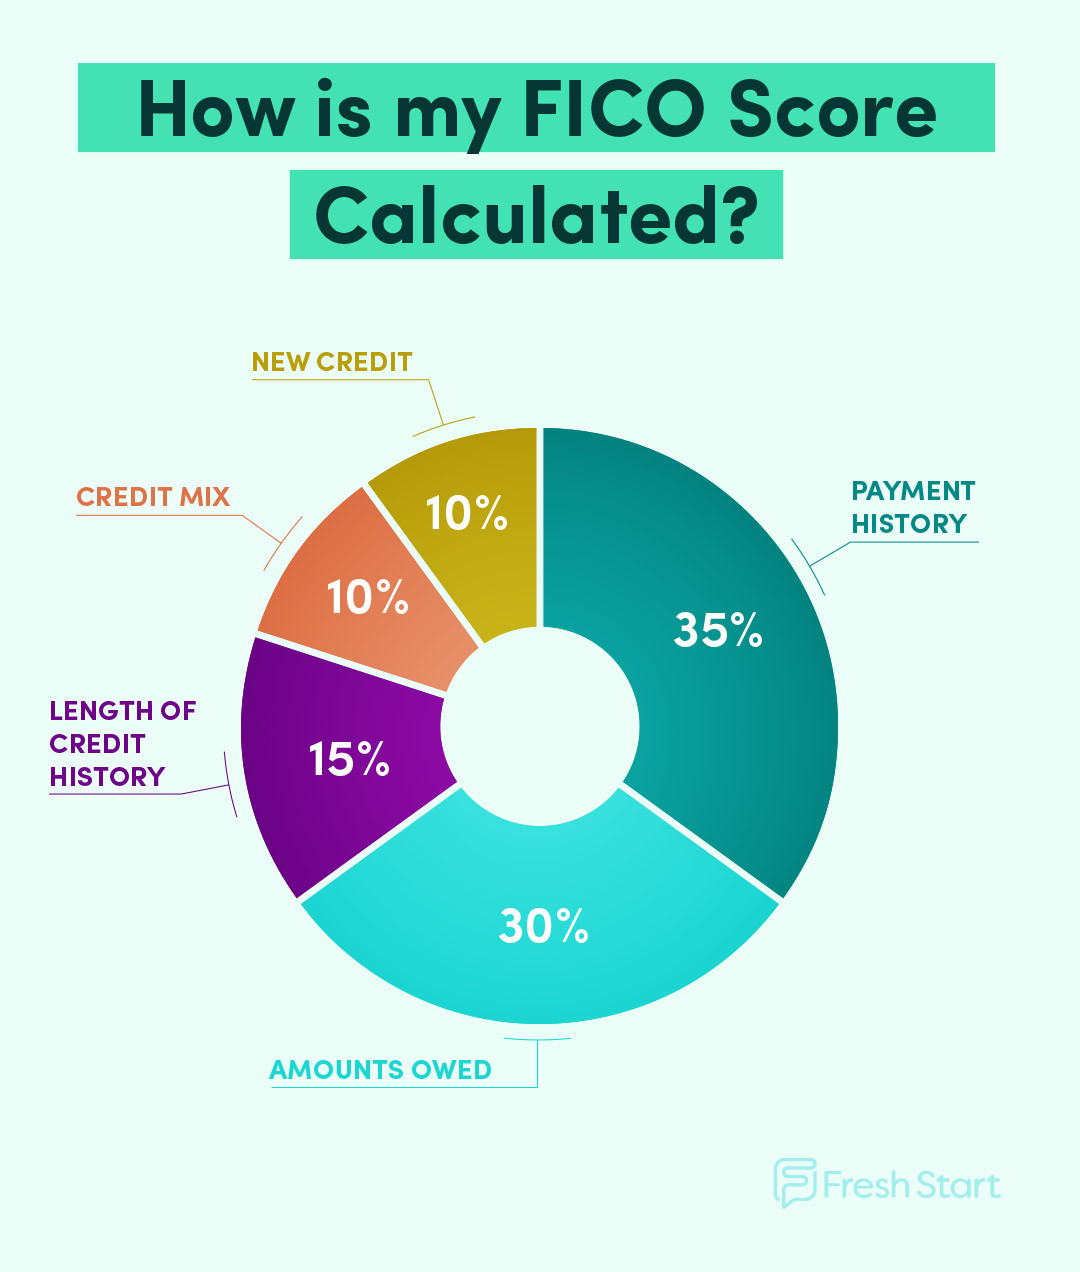 factors that impact your FICO score